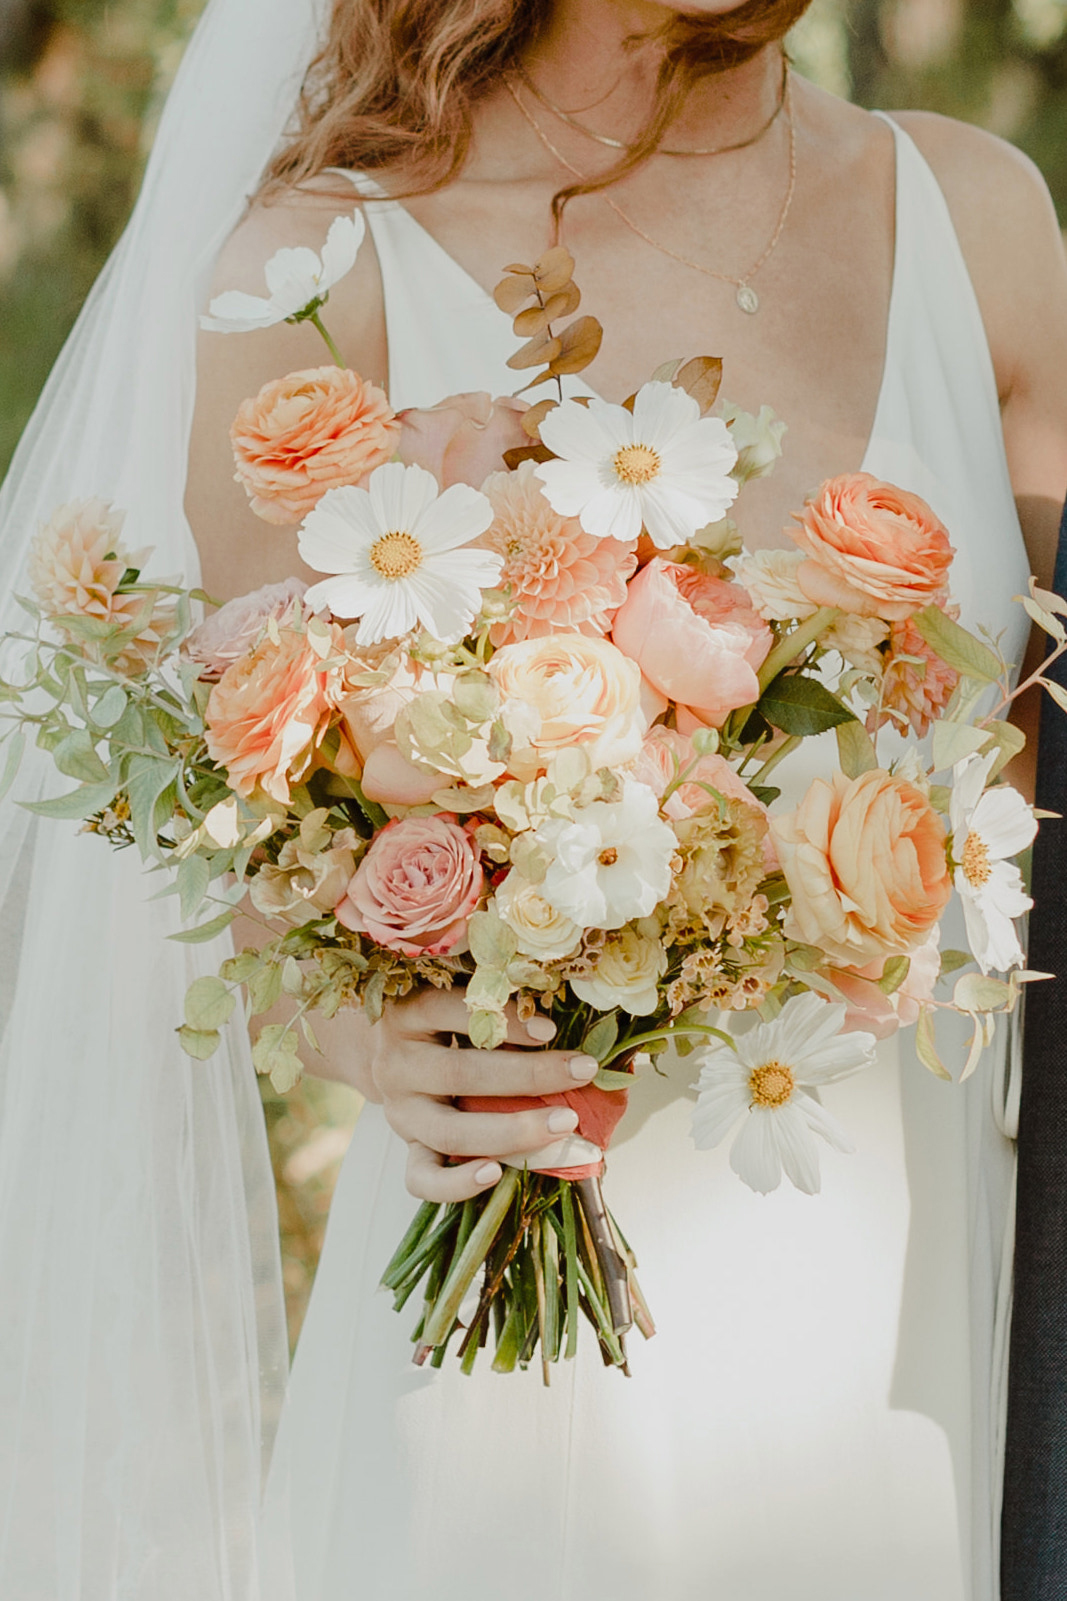 peach and white color wedding floral bouquet